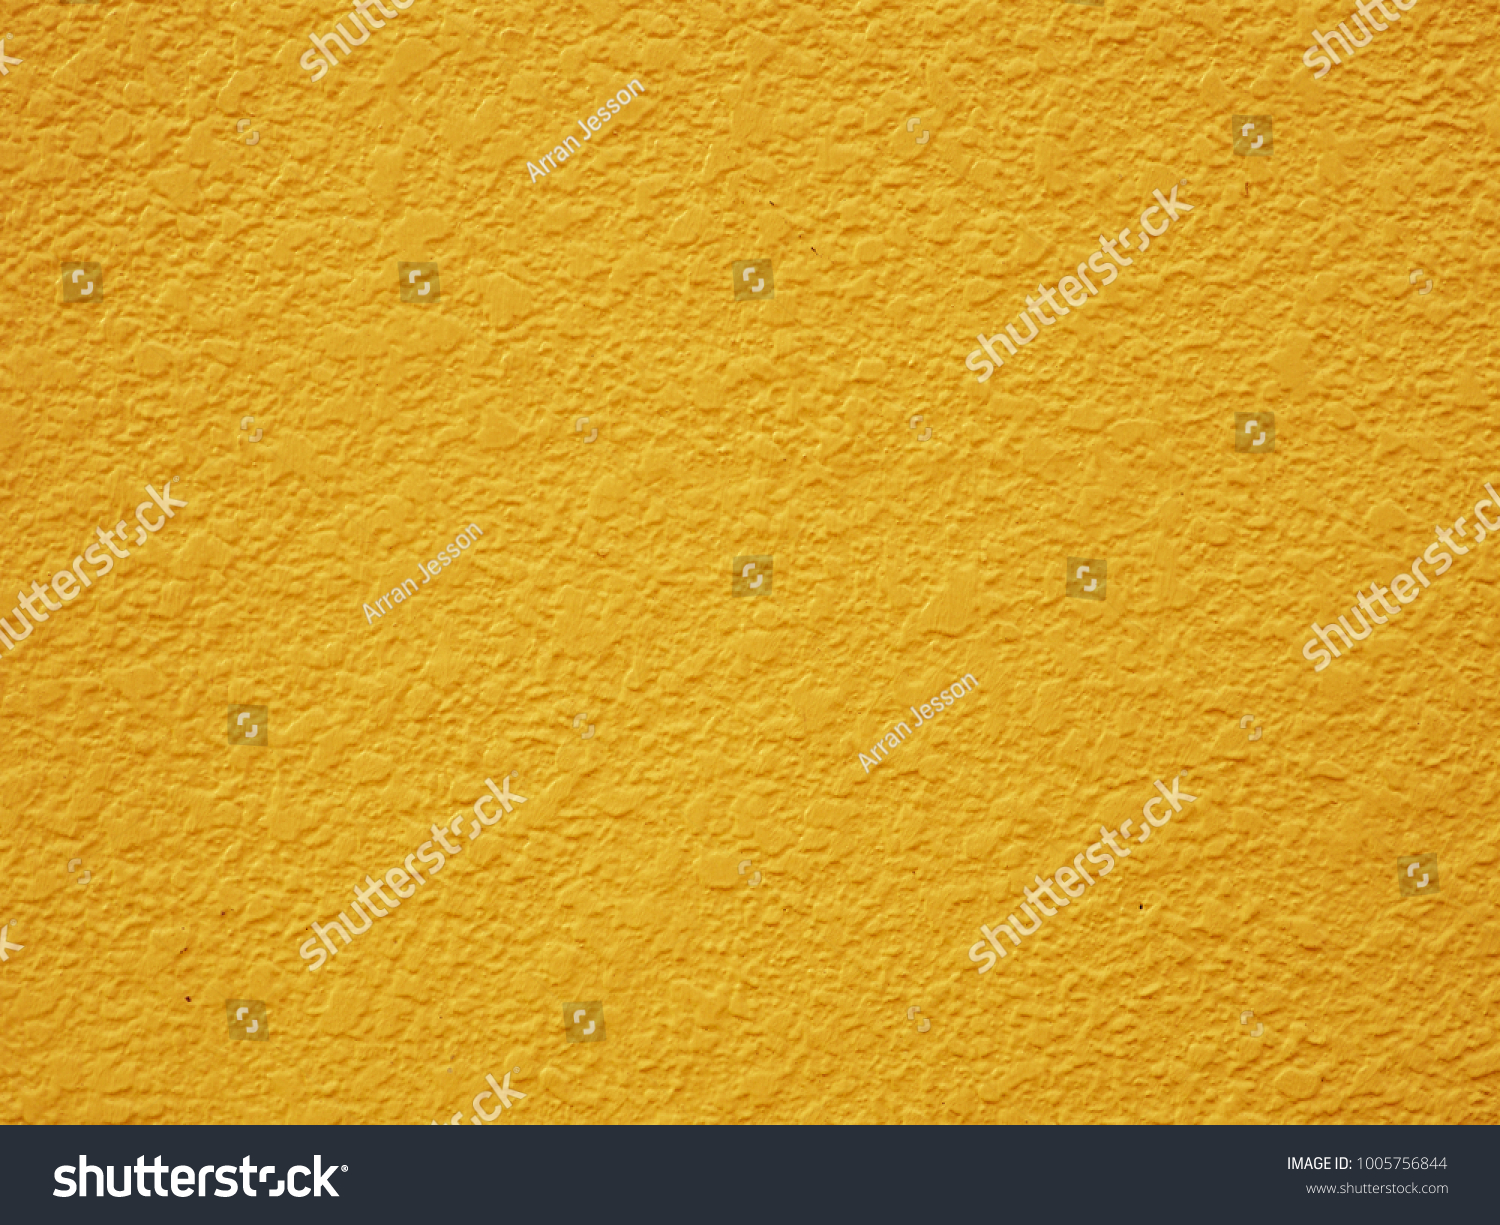 Painted Plaster Wall Background Bright Pastel Mustard Yellow Color Exterior With Authentic Texture